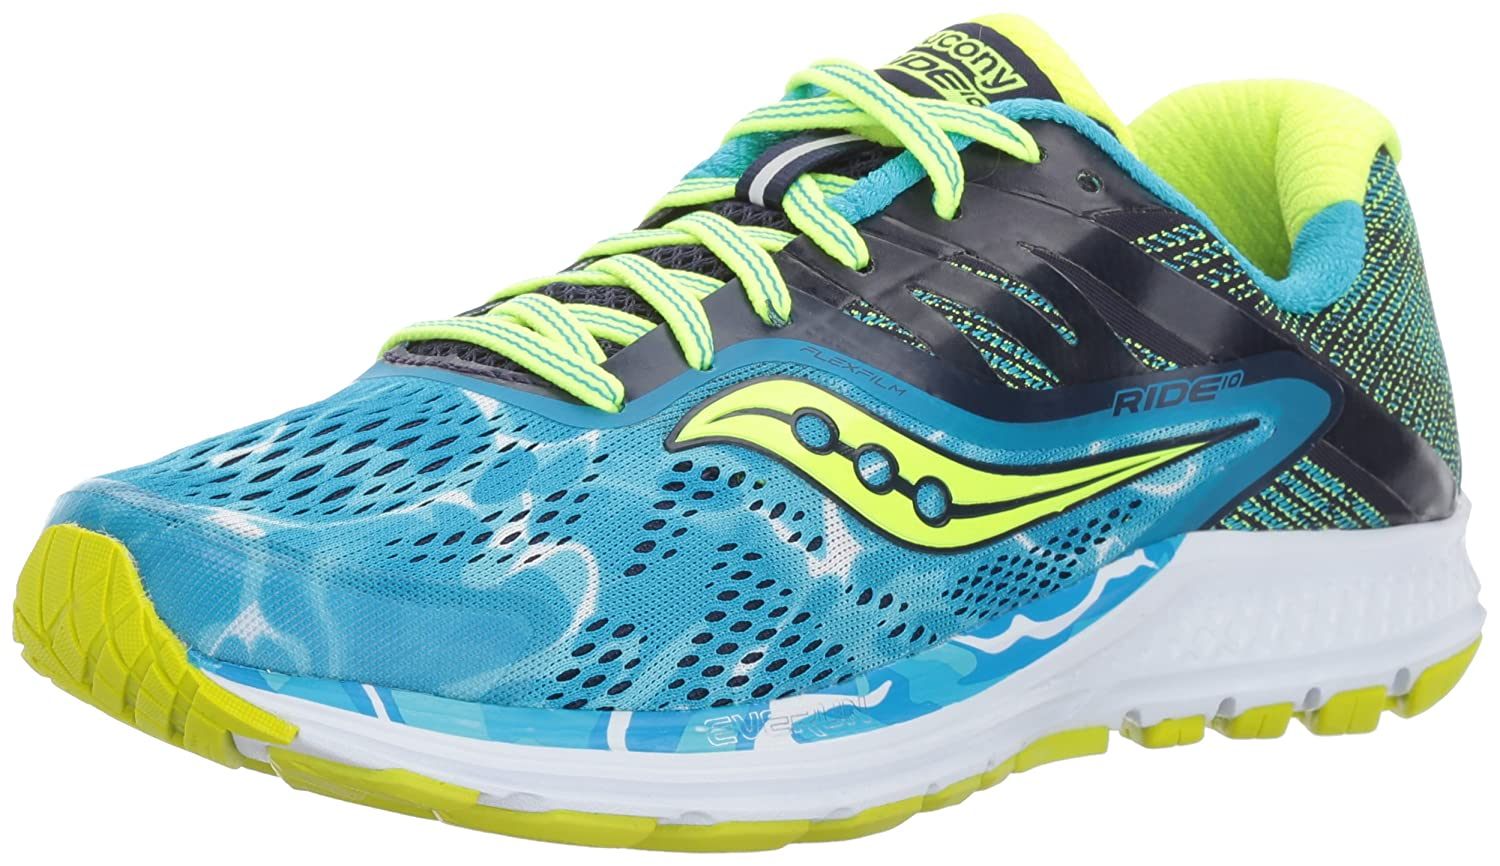 Saucony Women's Ride 10 Running-Shoes B01MZ3J9SP 6.5 W US|Blue